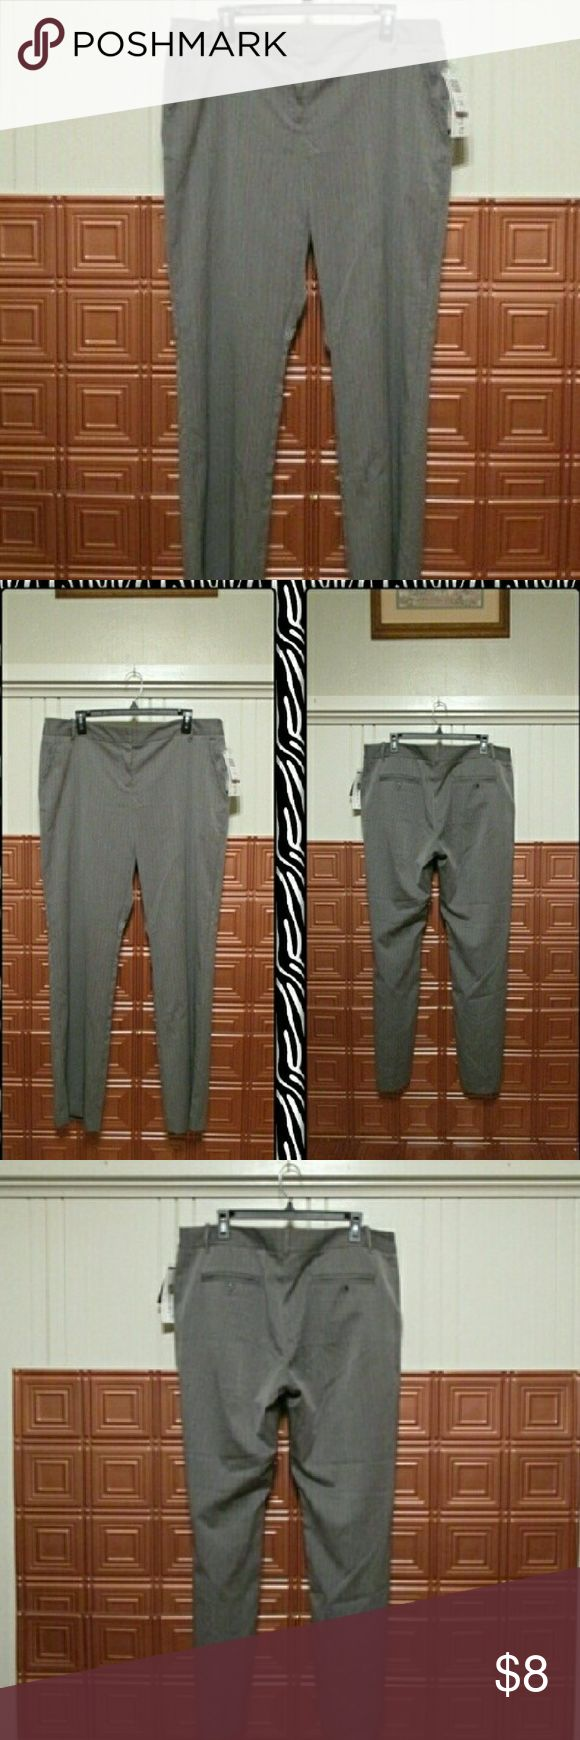 Women's Plus Size Trousers Reposh. Narrow through the hips. Low Rise with pin stripes Pants Trousers